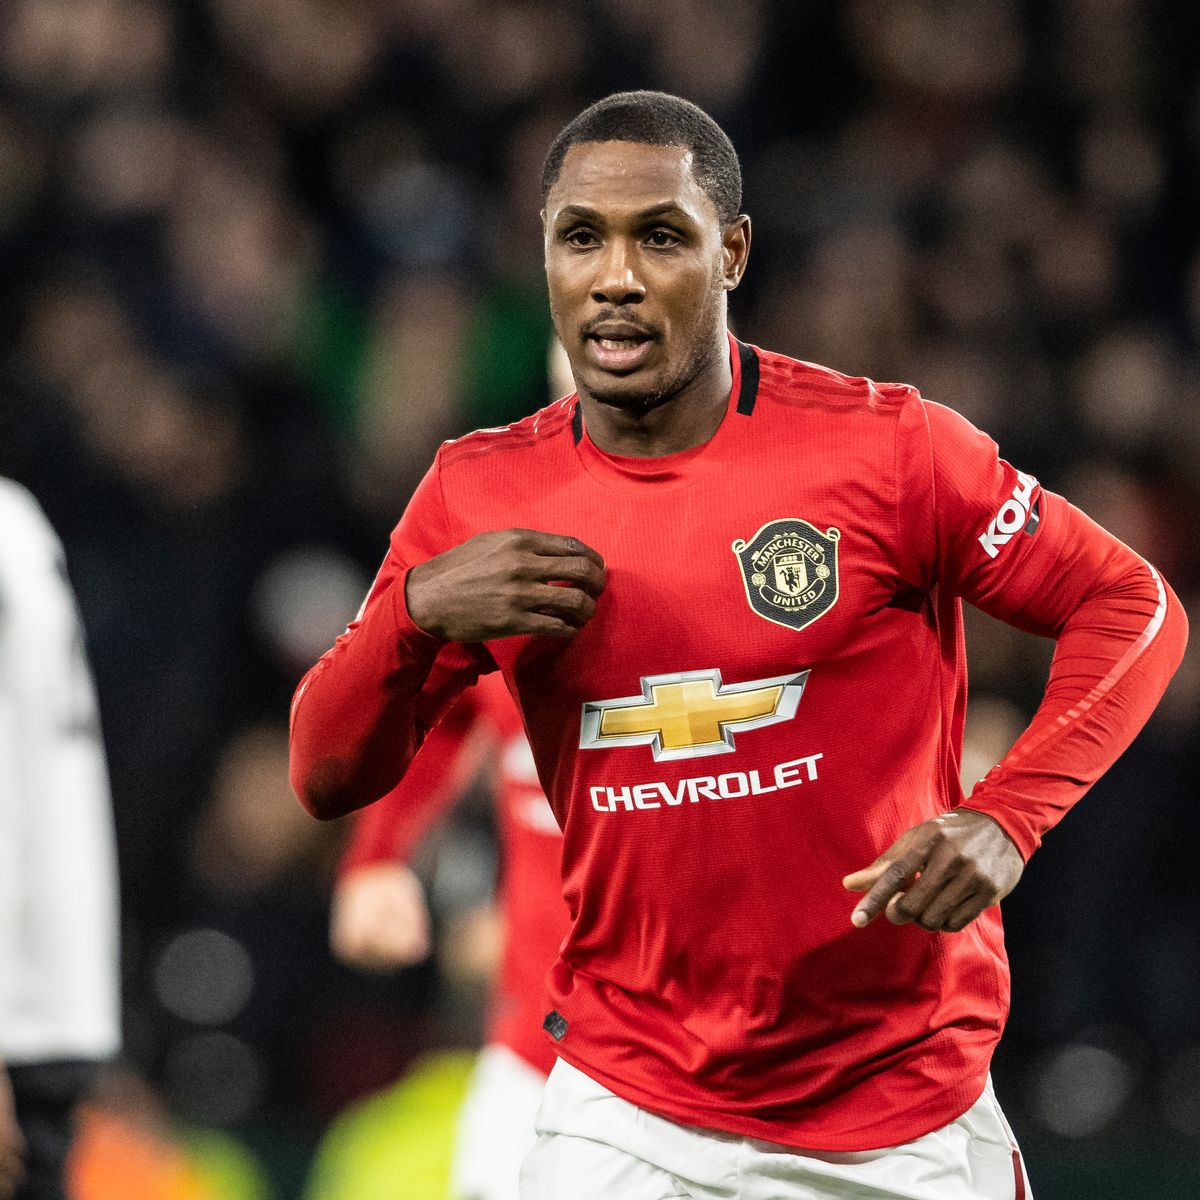 What future does Ighalo have at Manchester United?